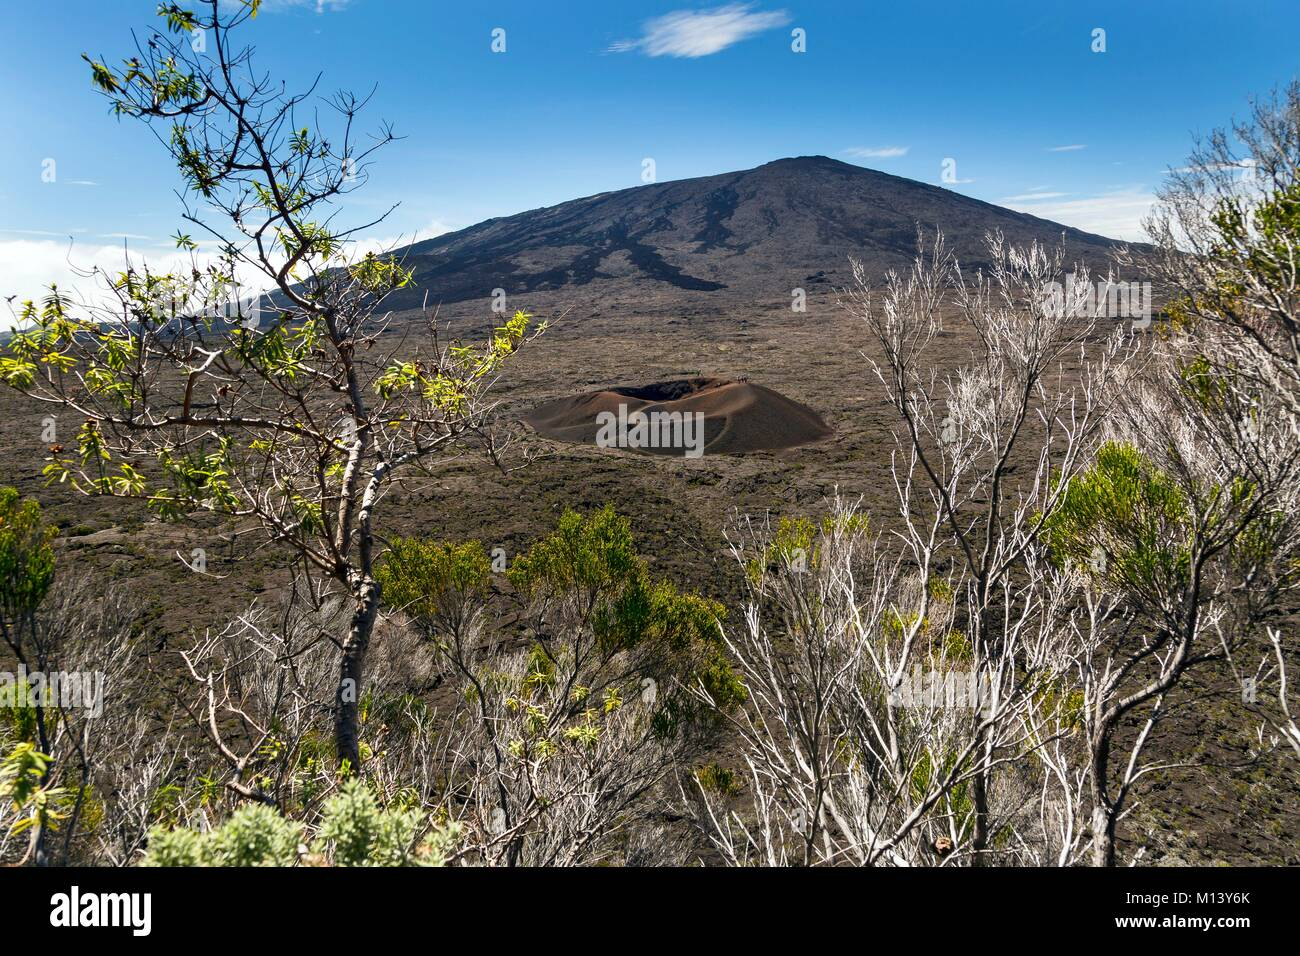 France, Reunion island, Reunion National Park listed as World Heritage by UNESCO, Piton de la Fournaise volcano, - Stock Image